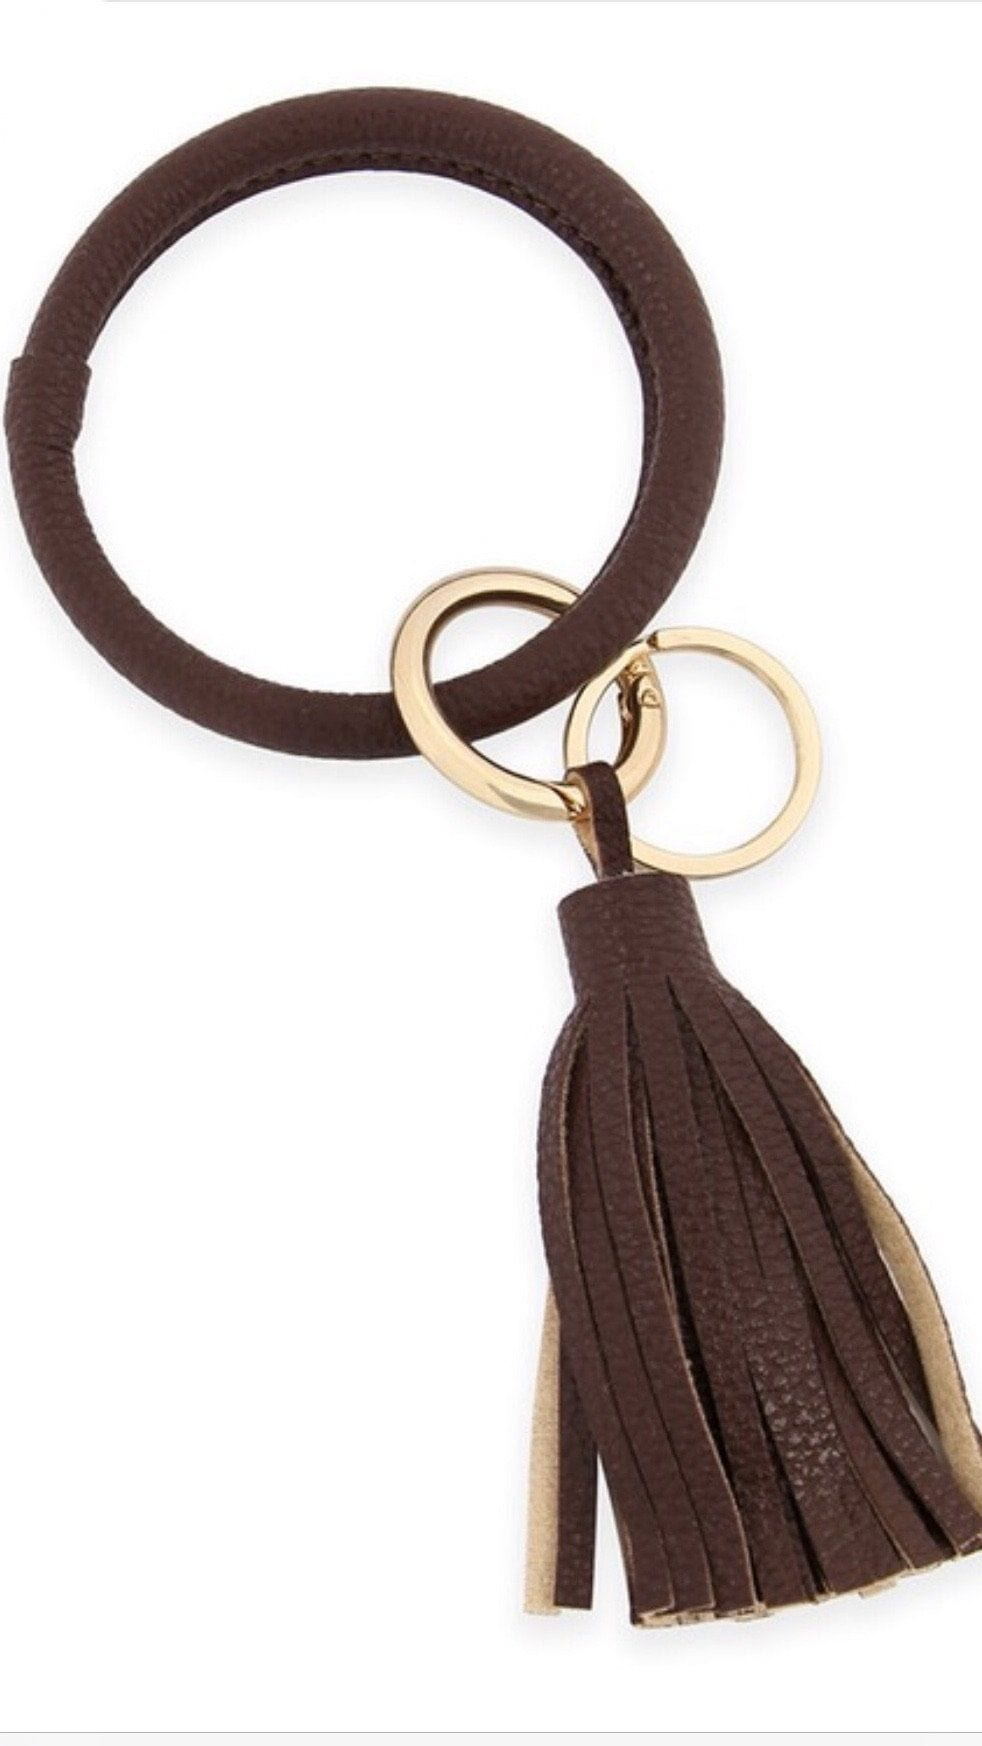 Leather Tassel Key Chain Ring door buster MYS